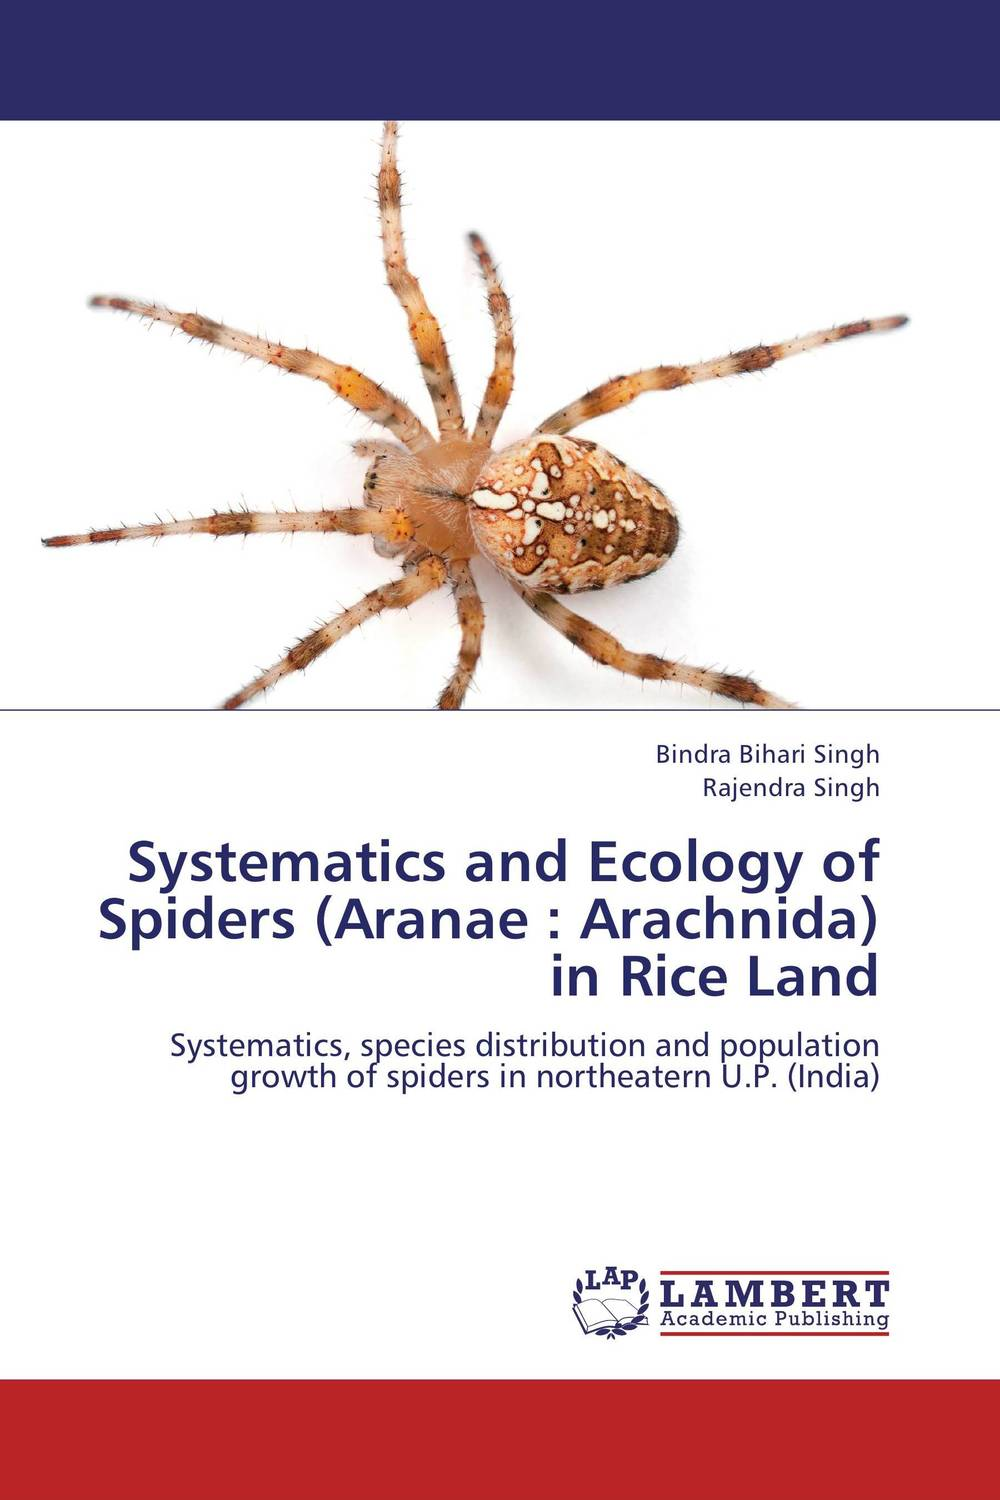 Systematics and Ecology of Spiders (Aranae : Arachnida) in Rice Land матюшкина к праздник во дворце